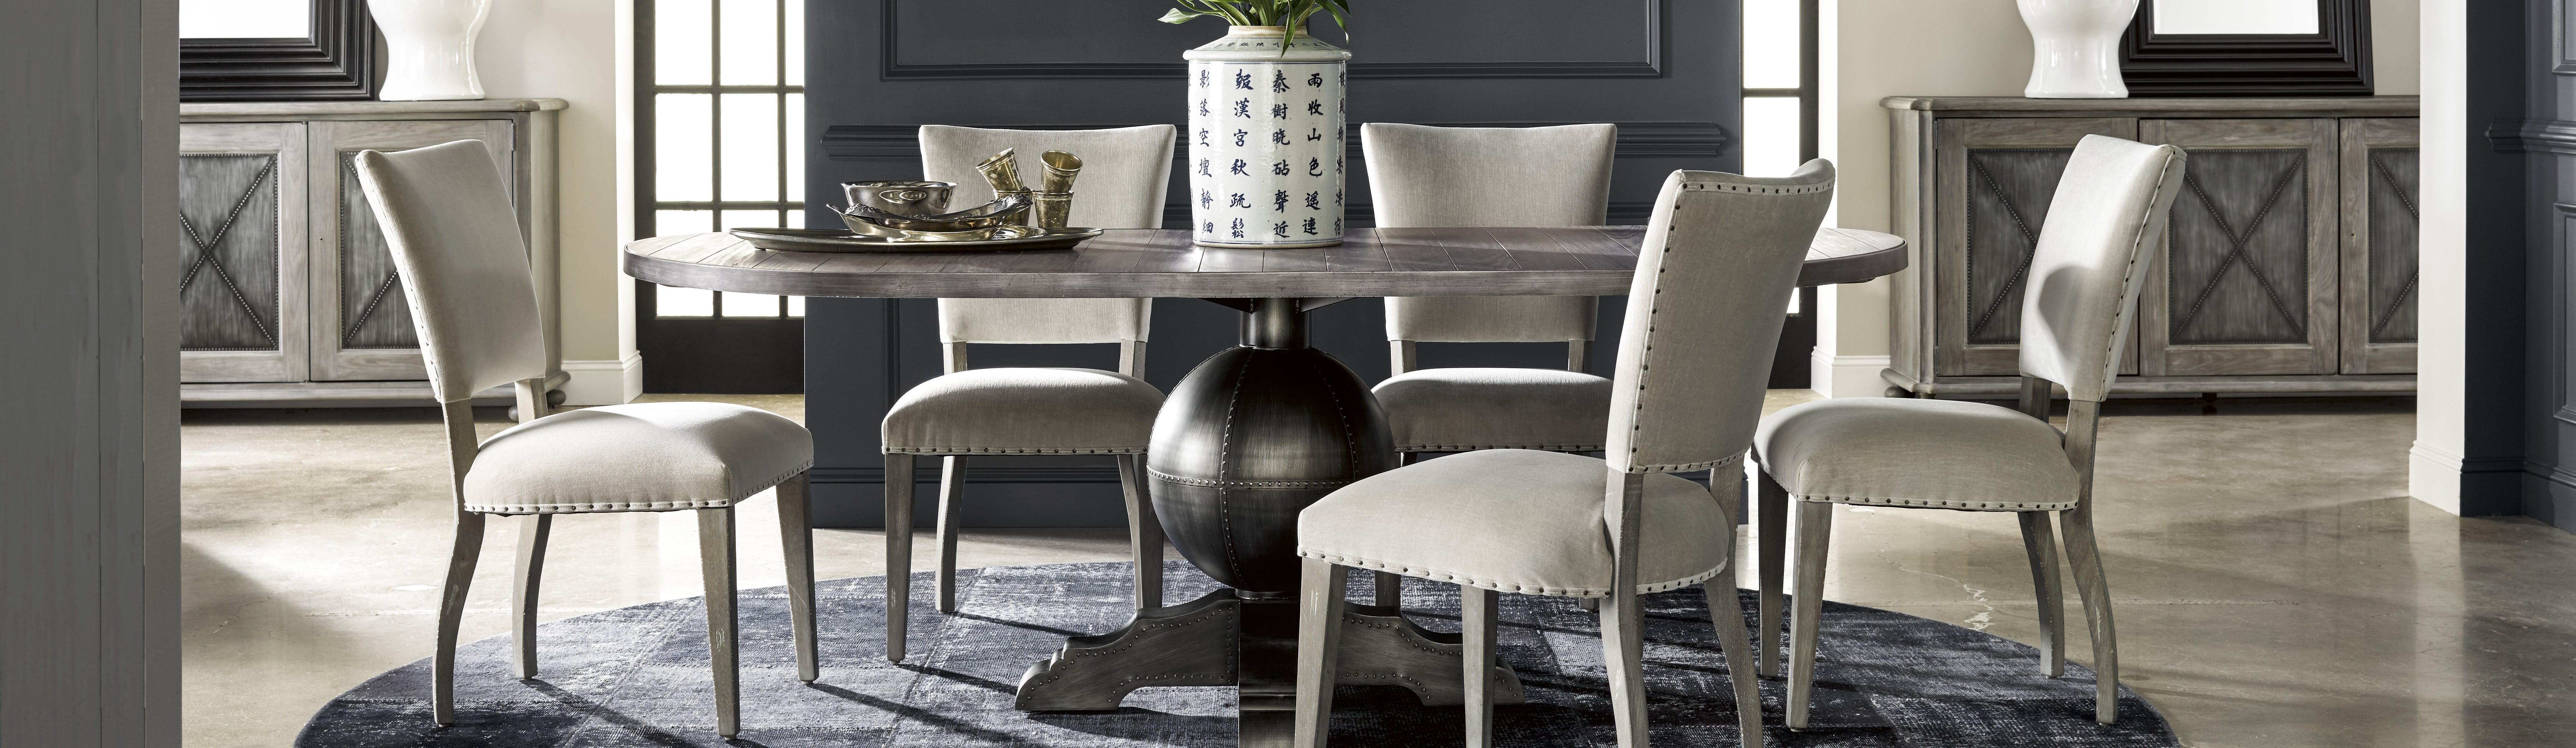 colors for arrangement fine sets dining design ashley tables ideas chair pieces storage best and wood rooms furniture colo table kitchens cabinet corner paint modern small accent